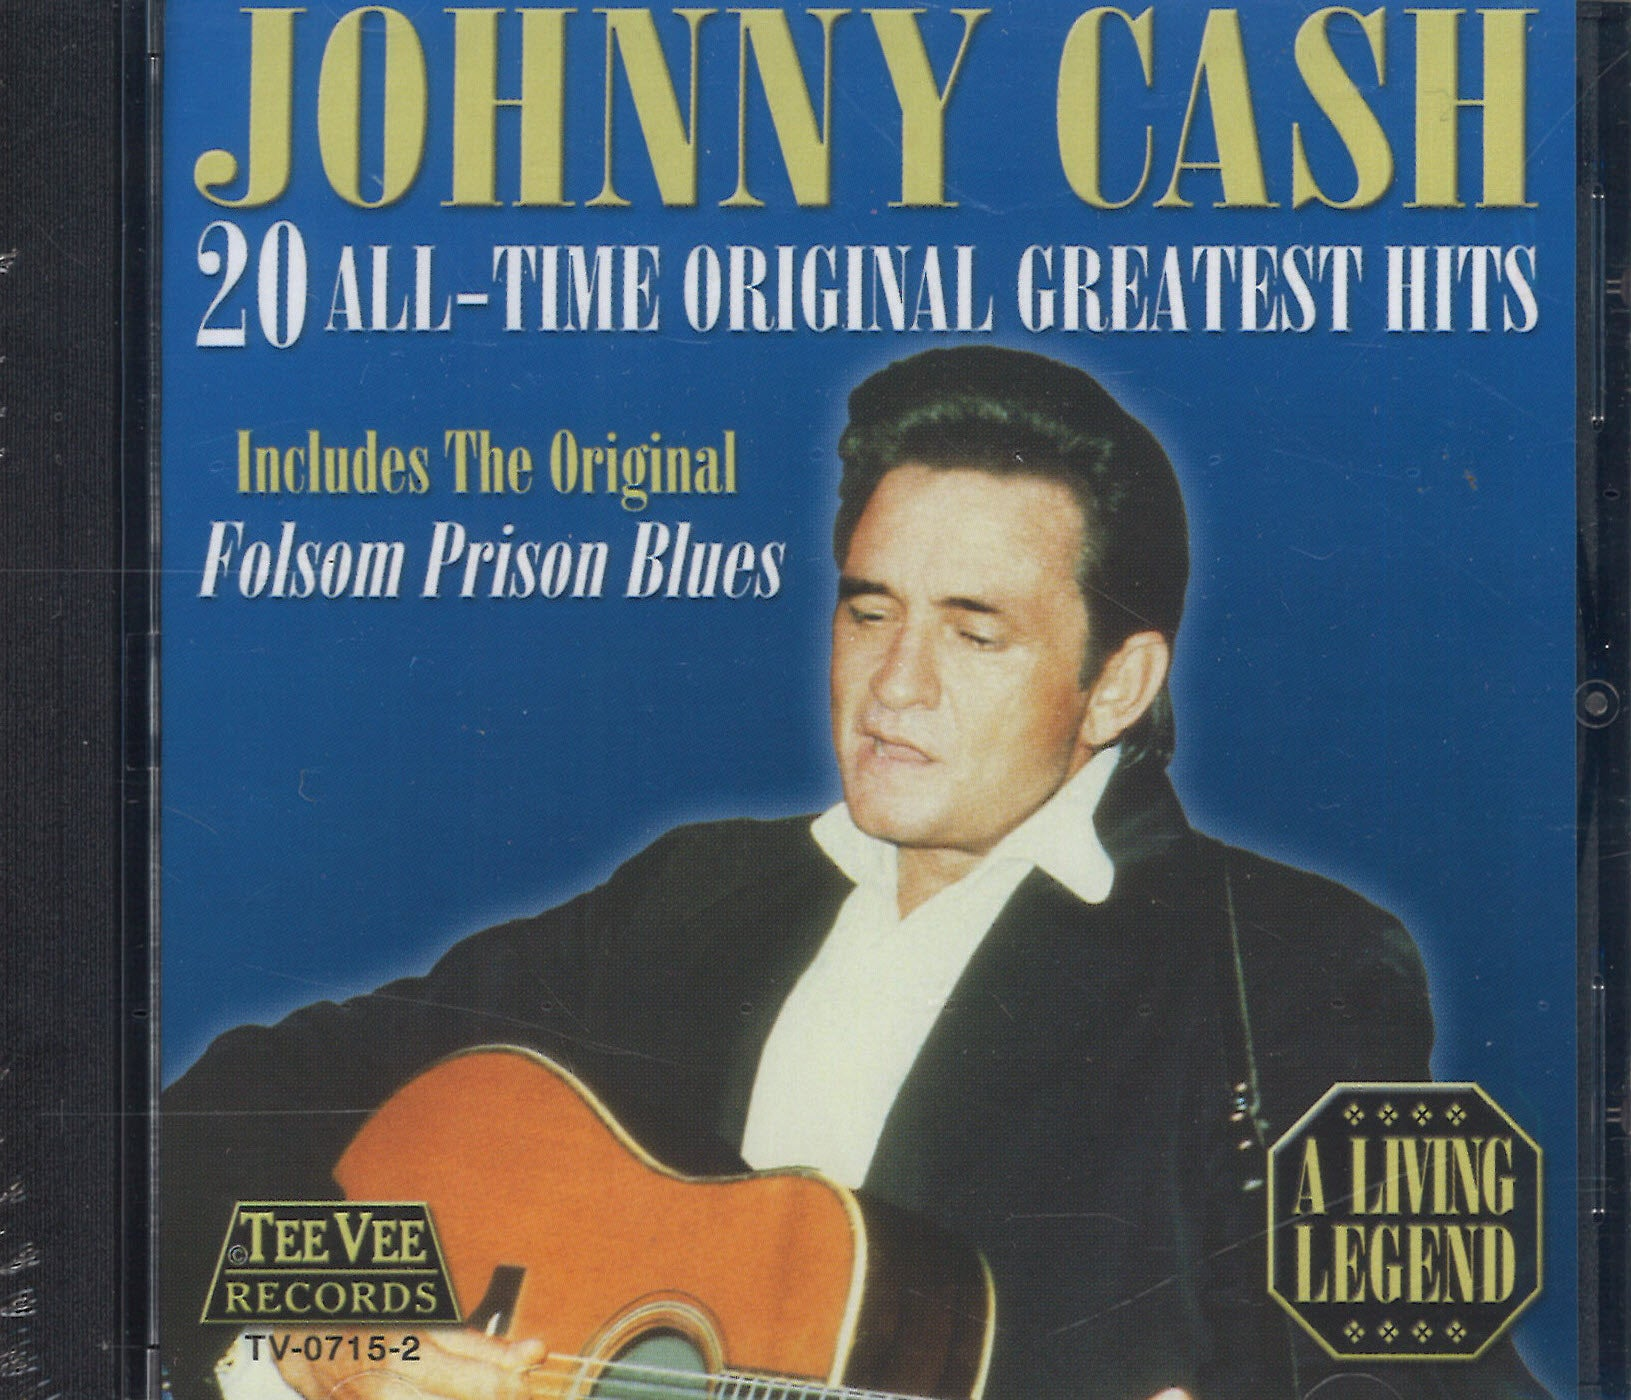 Johnny Cash 20 All-Time Original Greatest Hits